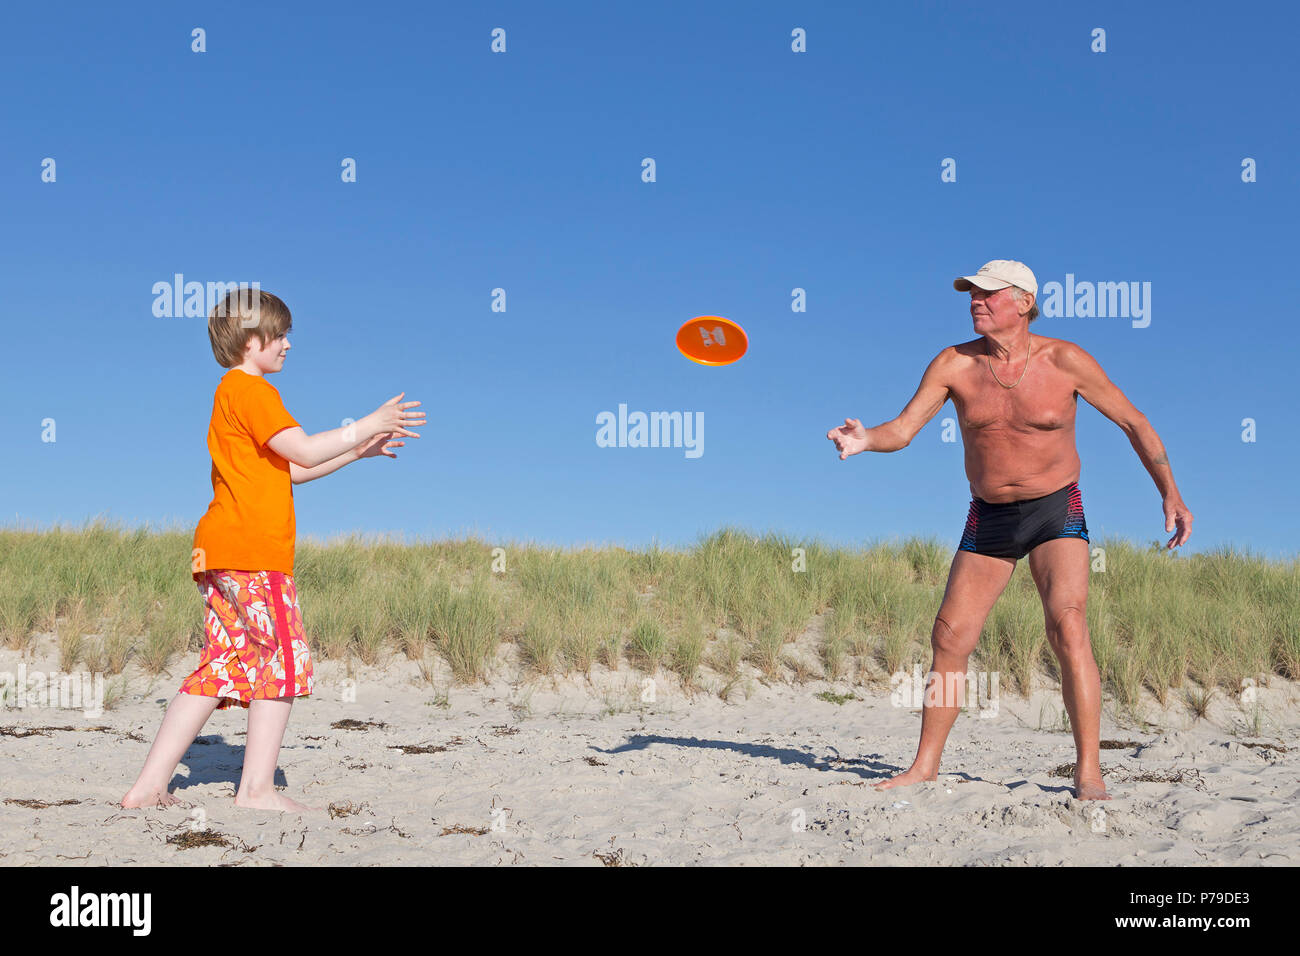 grandpa and grandson playing with a frisbee disc at the beach, Wustrow, Fischland, Mecklenburg-West Pomerania, Germany - Stock Image